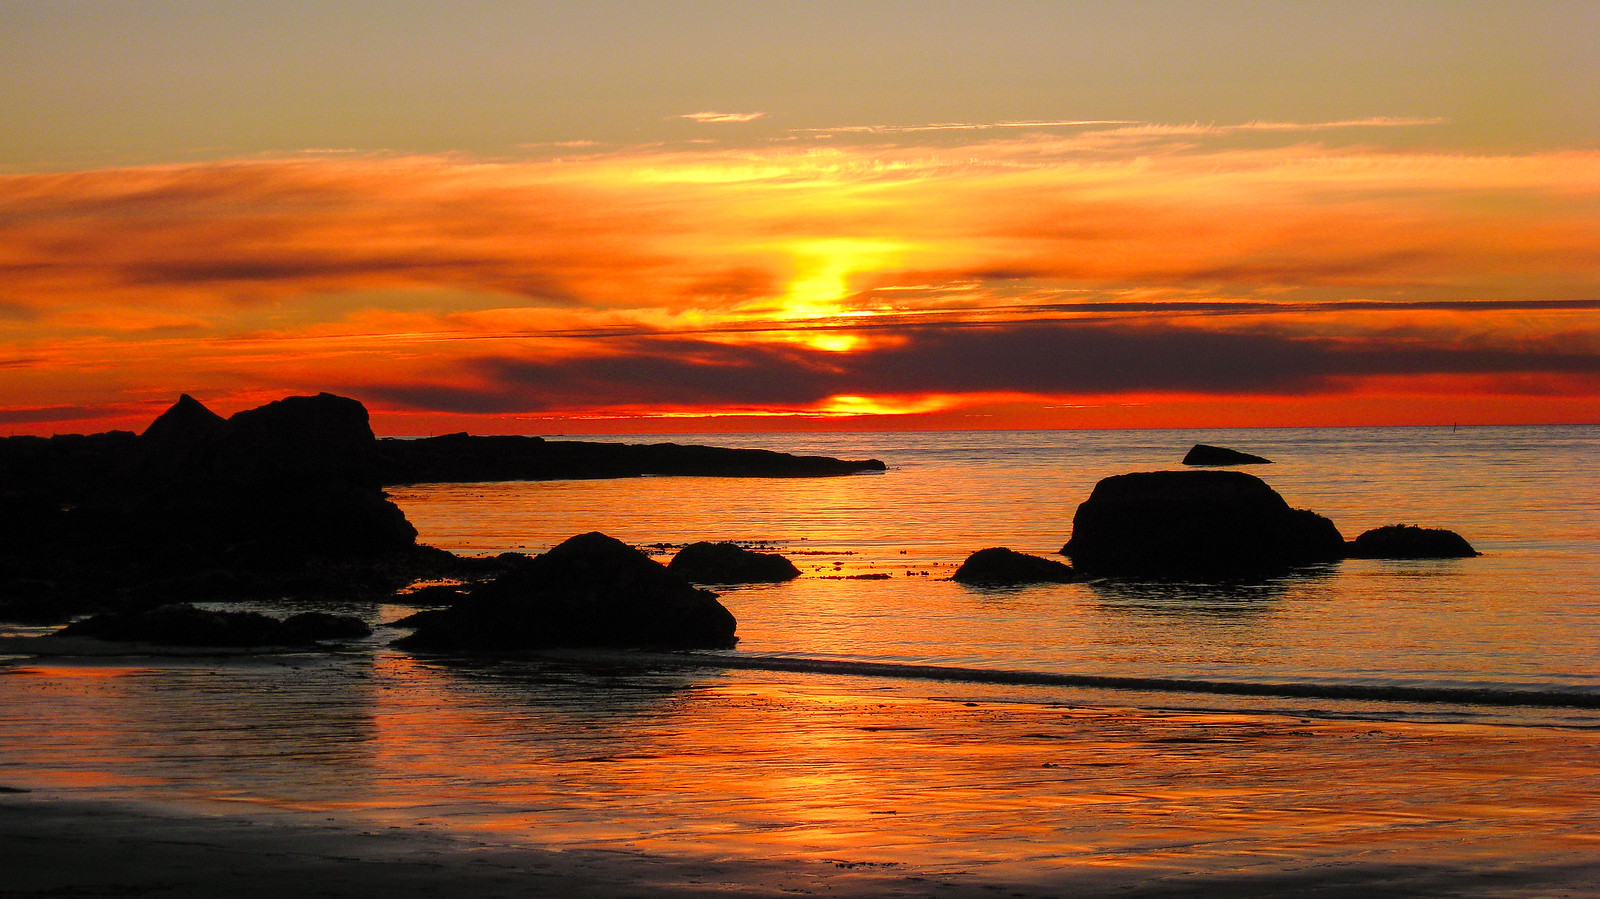 Sunset in Norway - year 2008